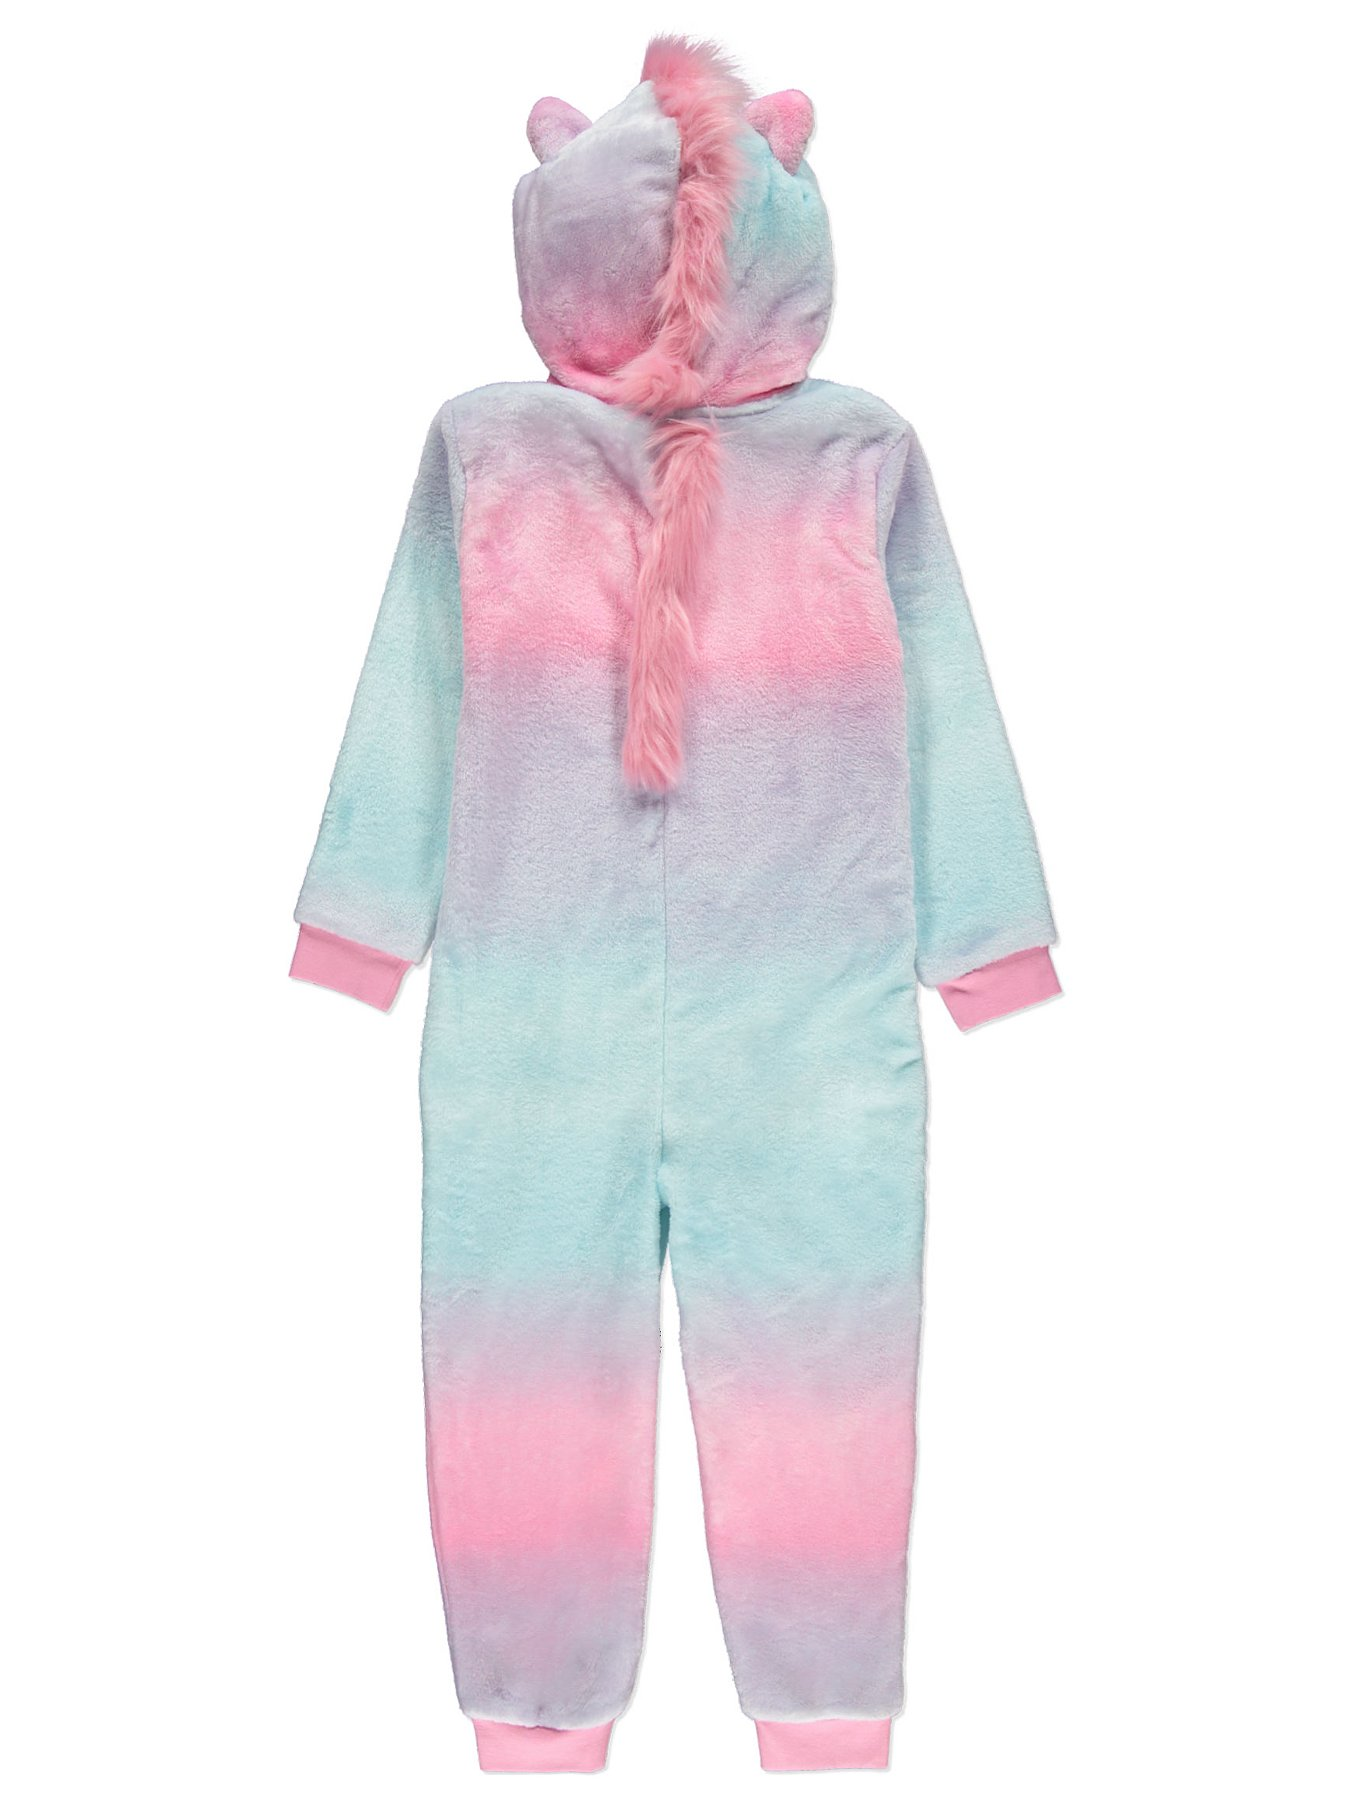 Pink Unicorn Hooded Fleece Onesie  c3851901d